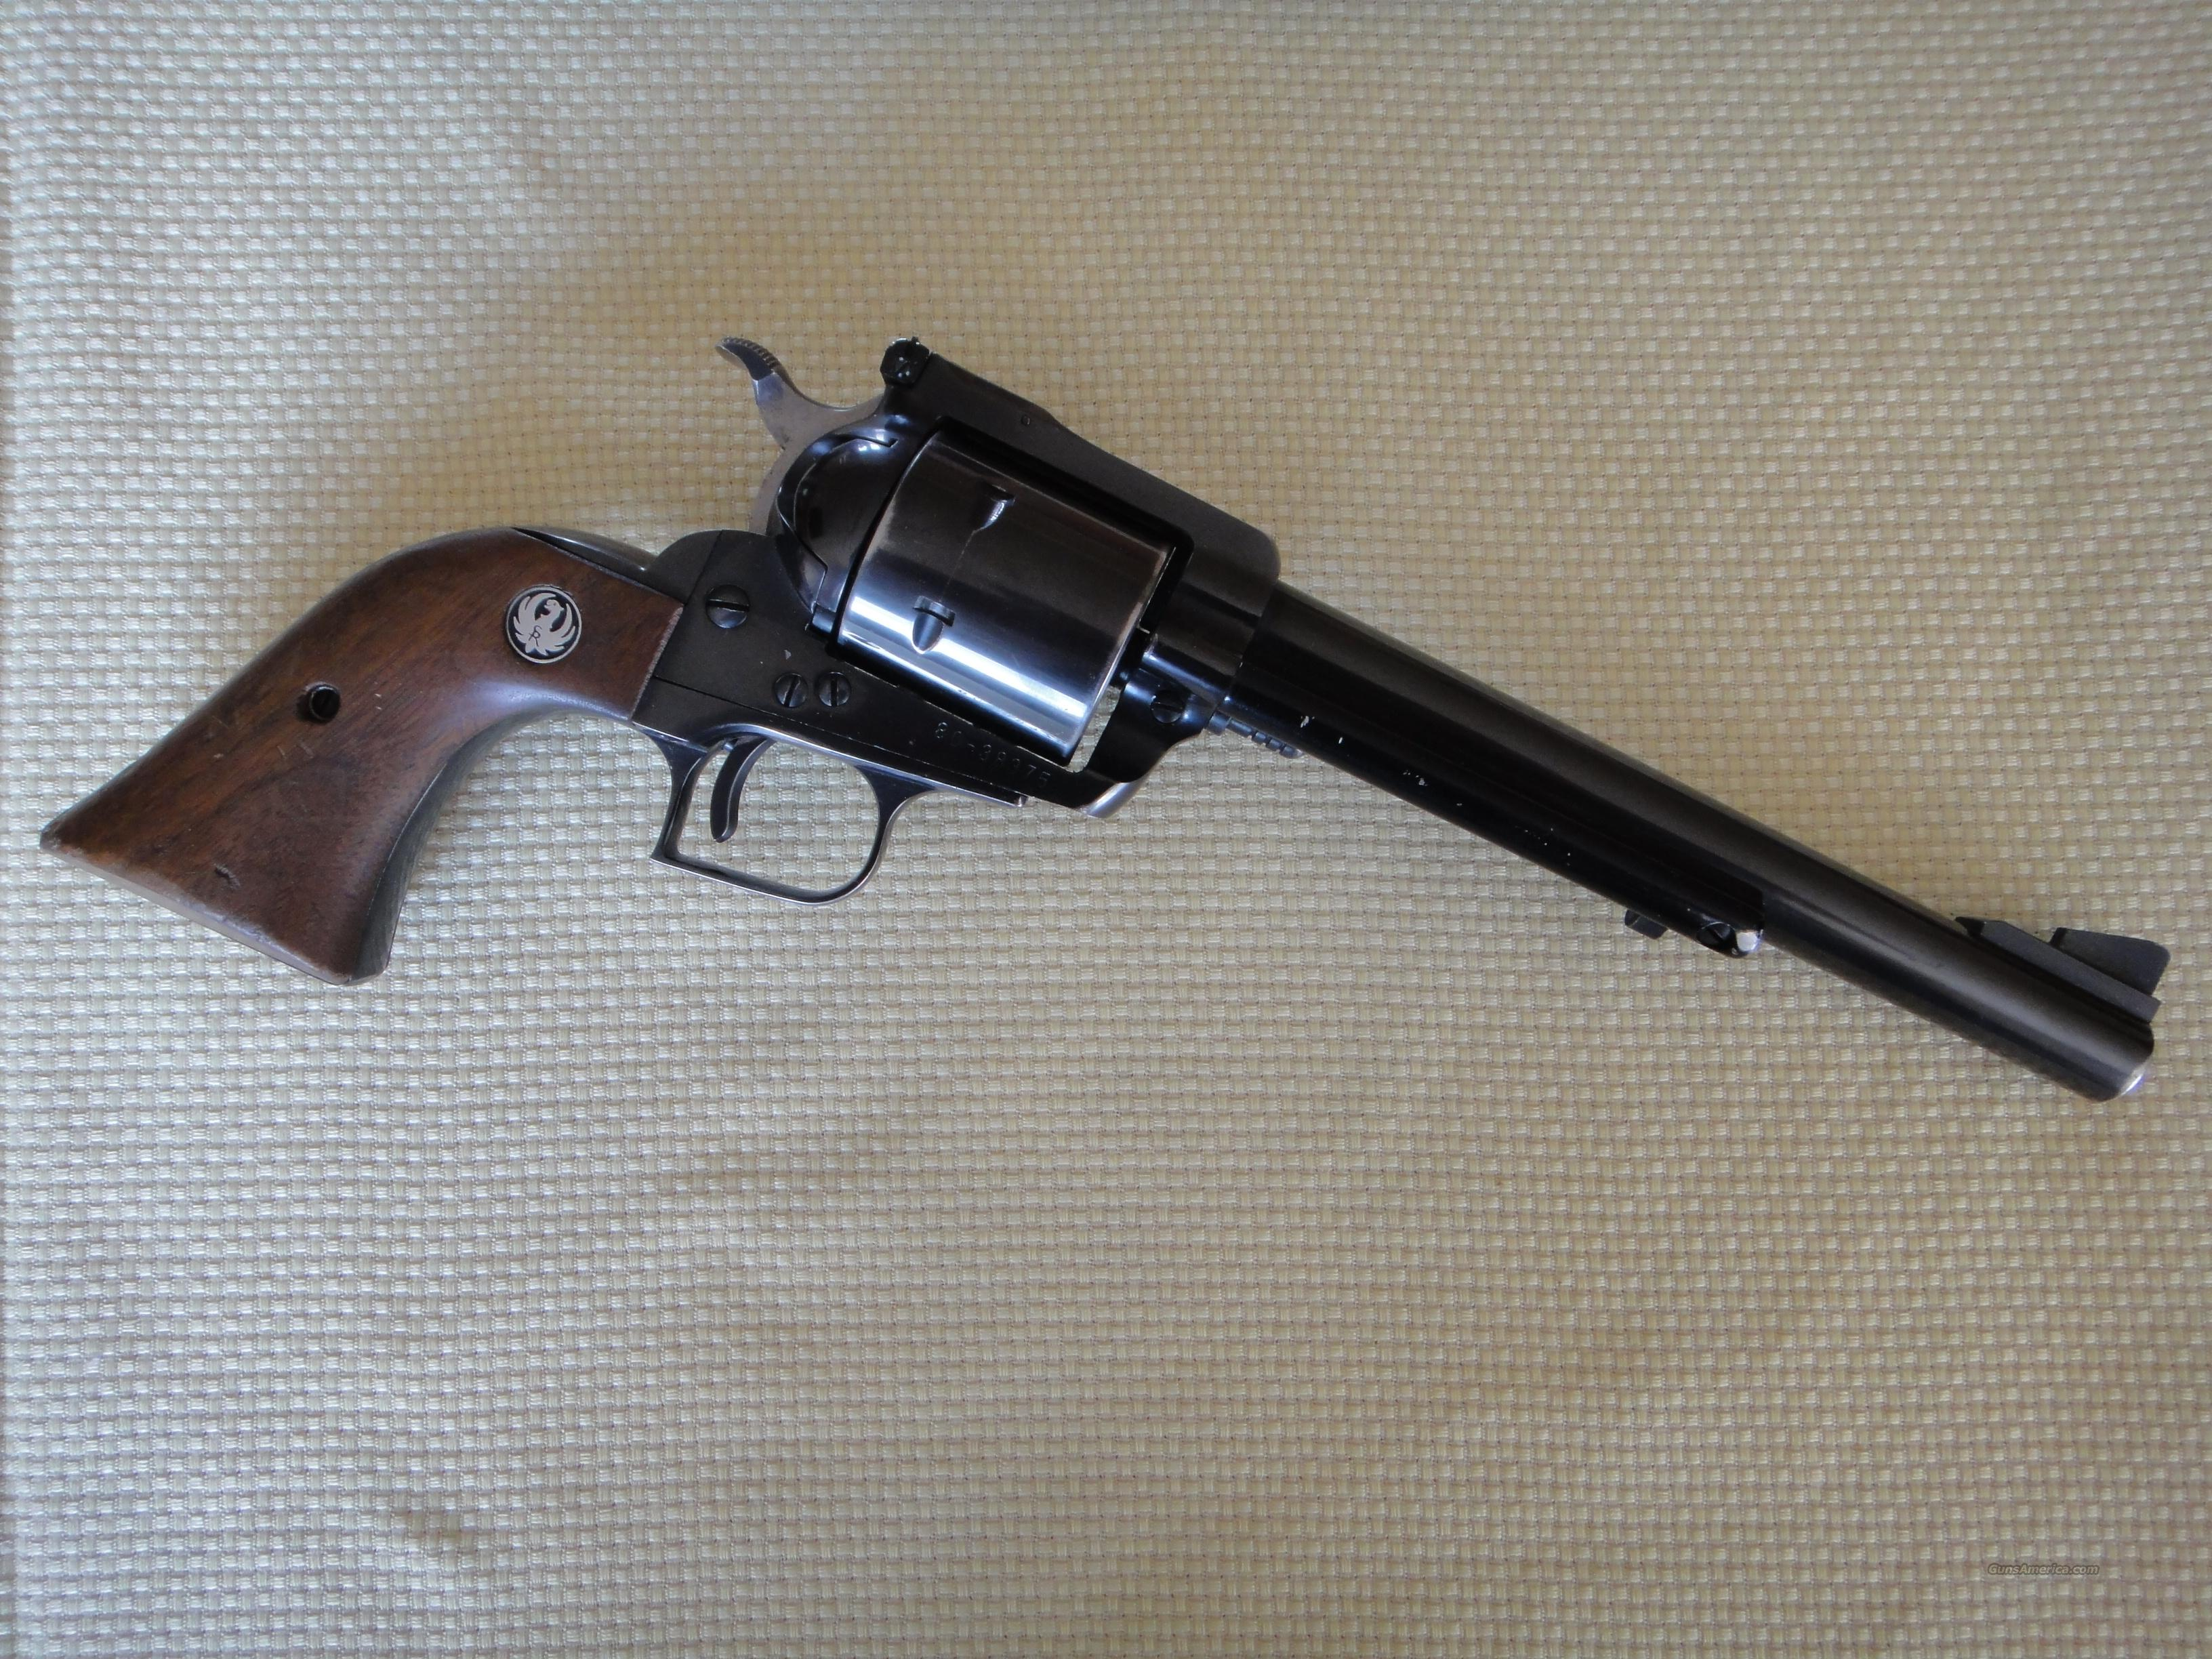 Ruger Super Blackhawk, 3 Screw .44 Mag.  Guns > Pistols > Ruger Single Action Revolvers > Blackhawk Type